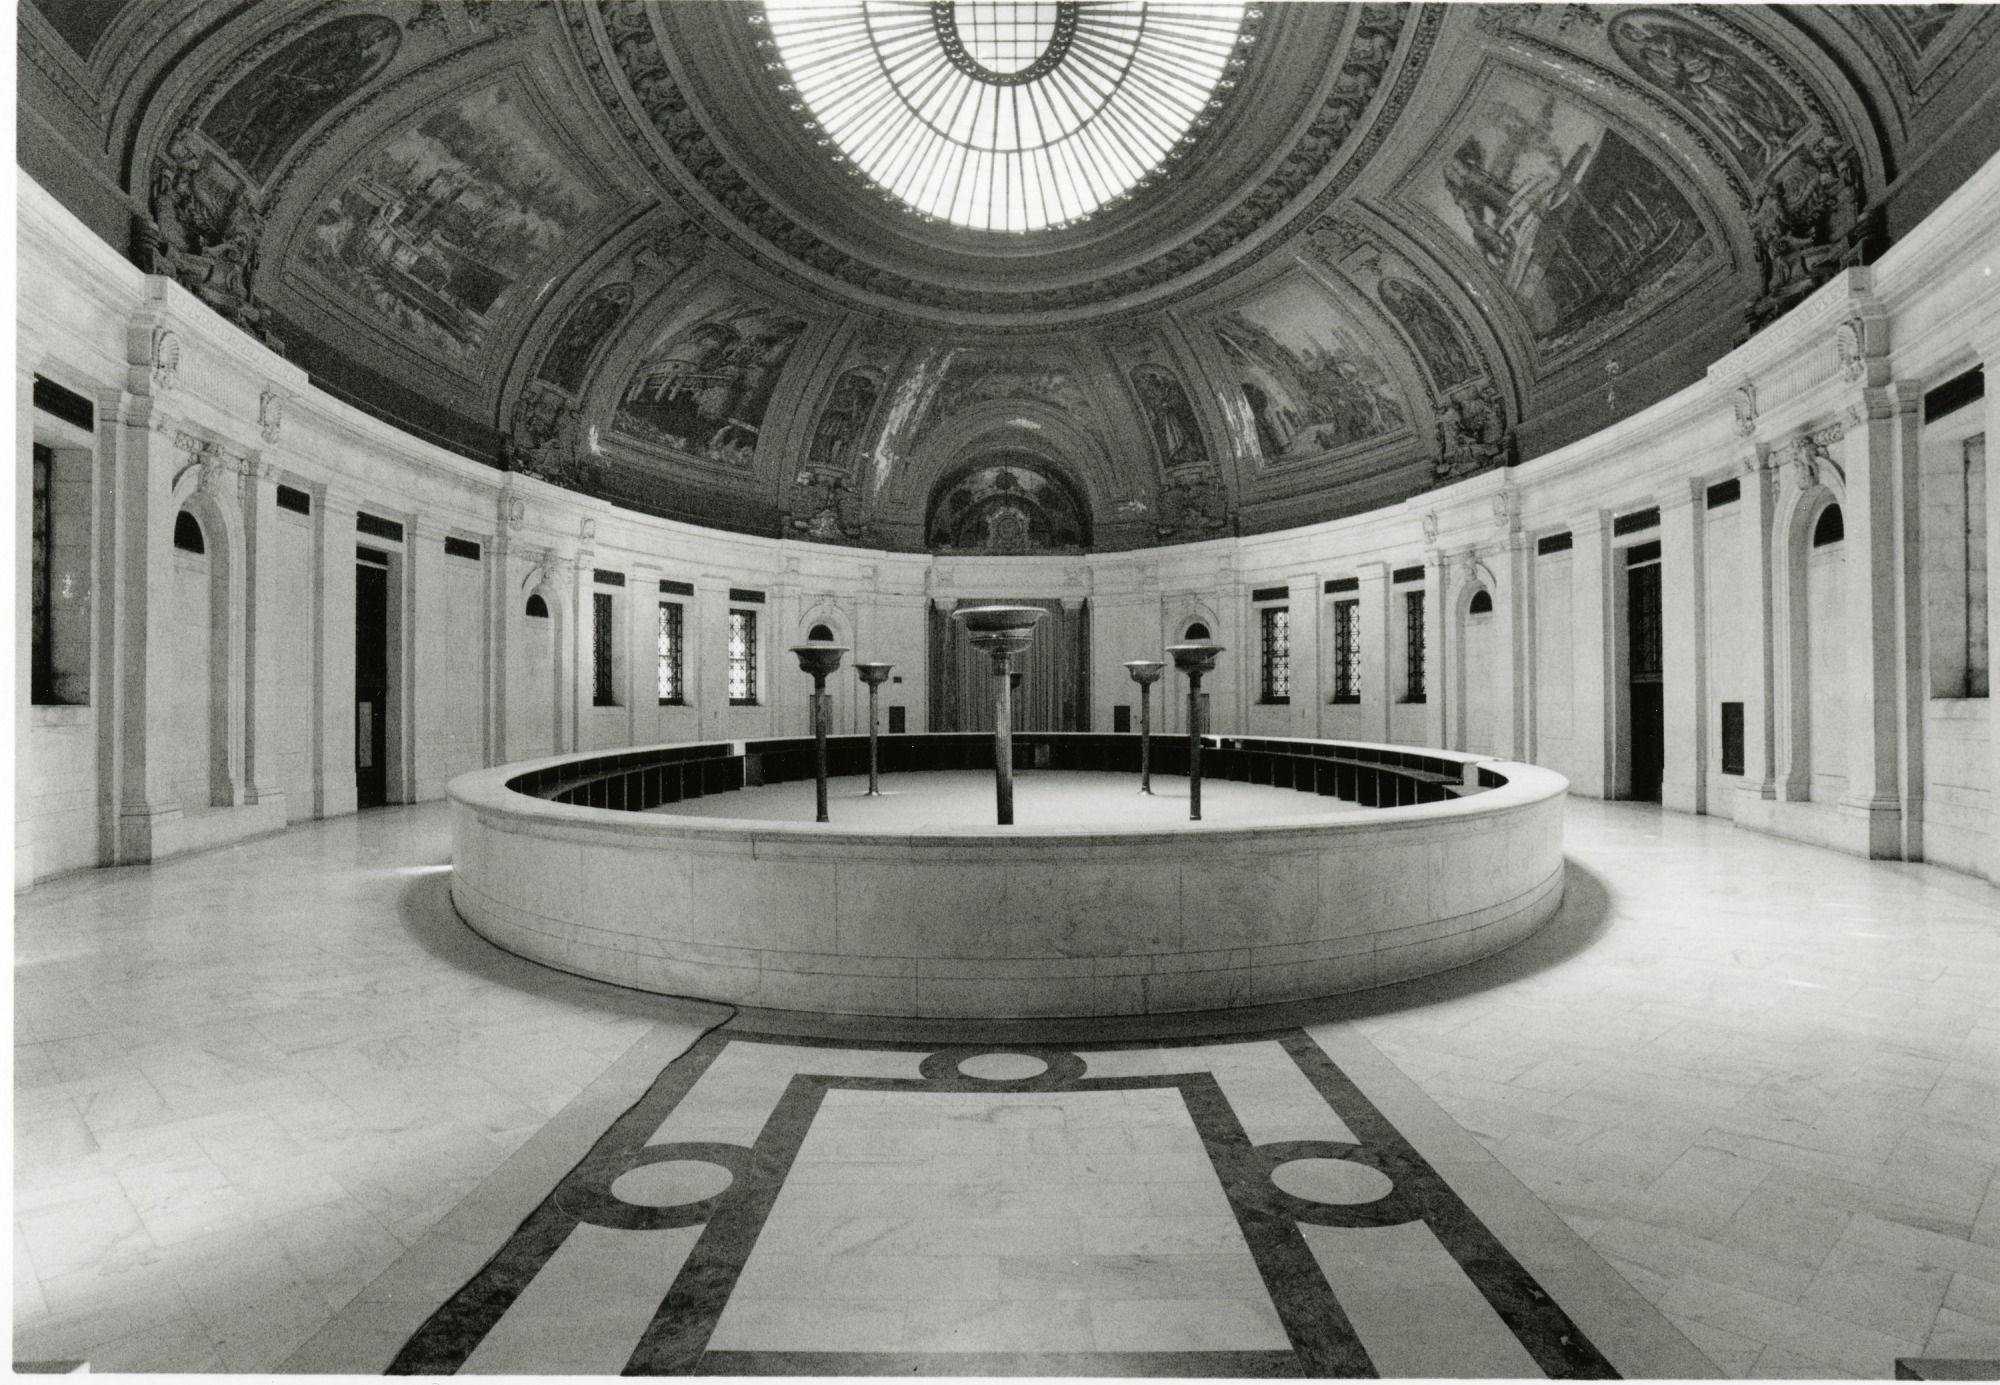 Interior of Alexander Hamilton Customs House with Fountain